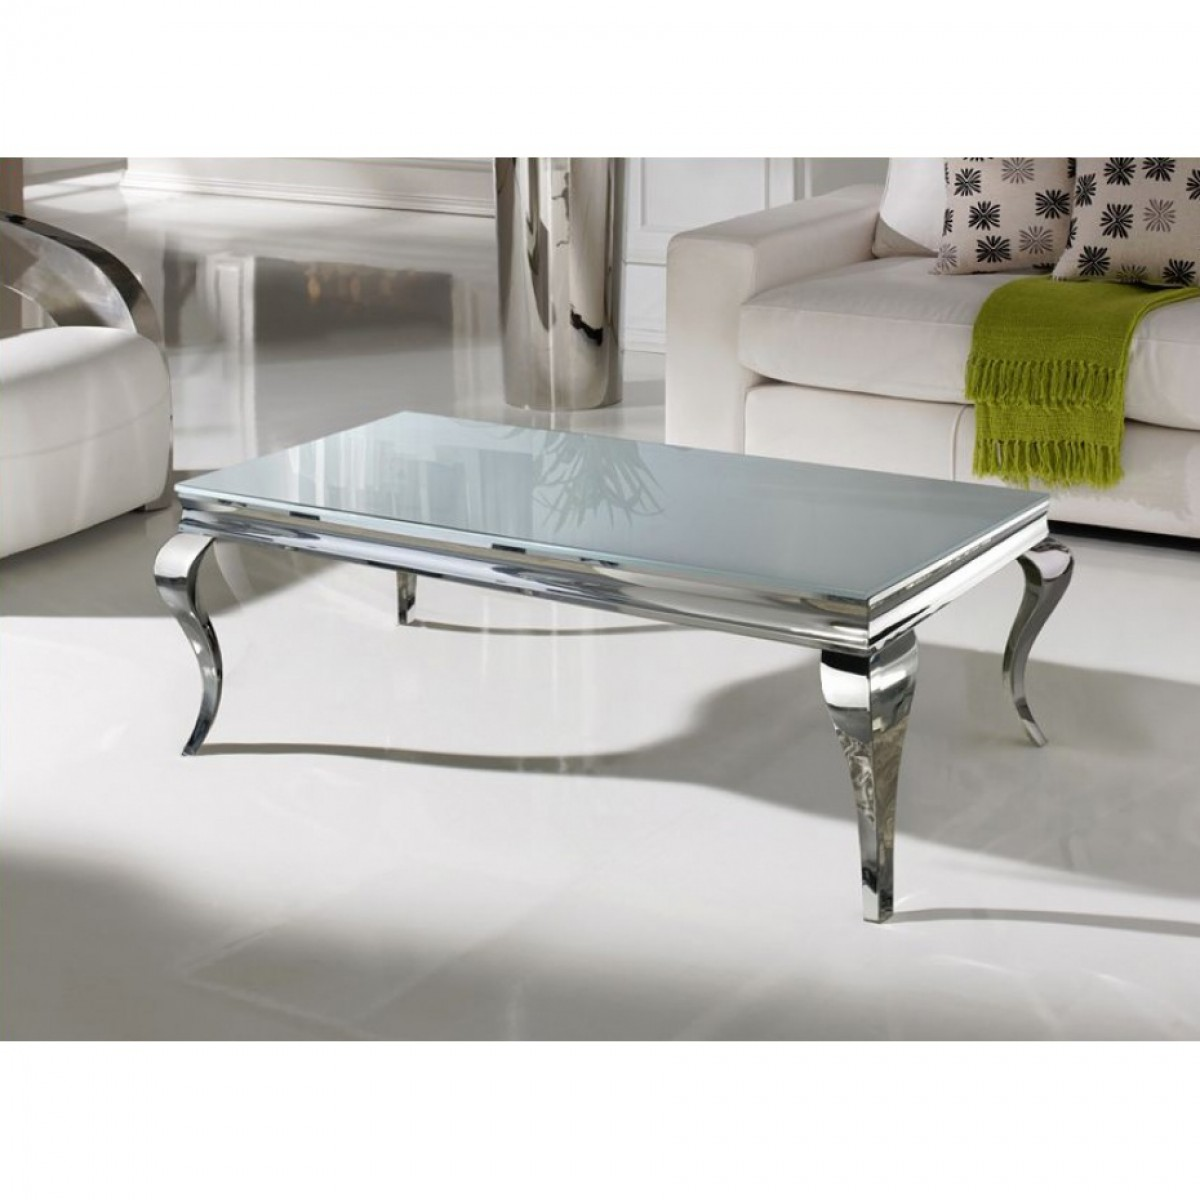 Table basse style baroque pas cher mobilier design - Table basse baroque pas cher ...